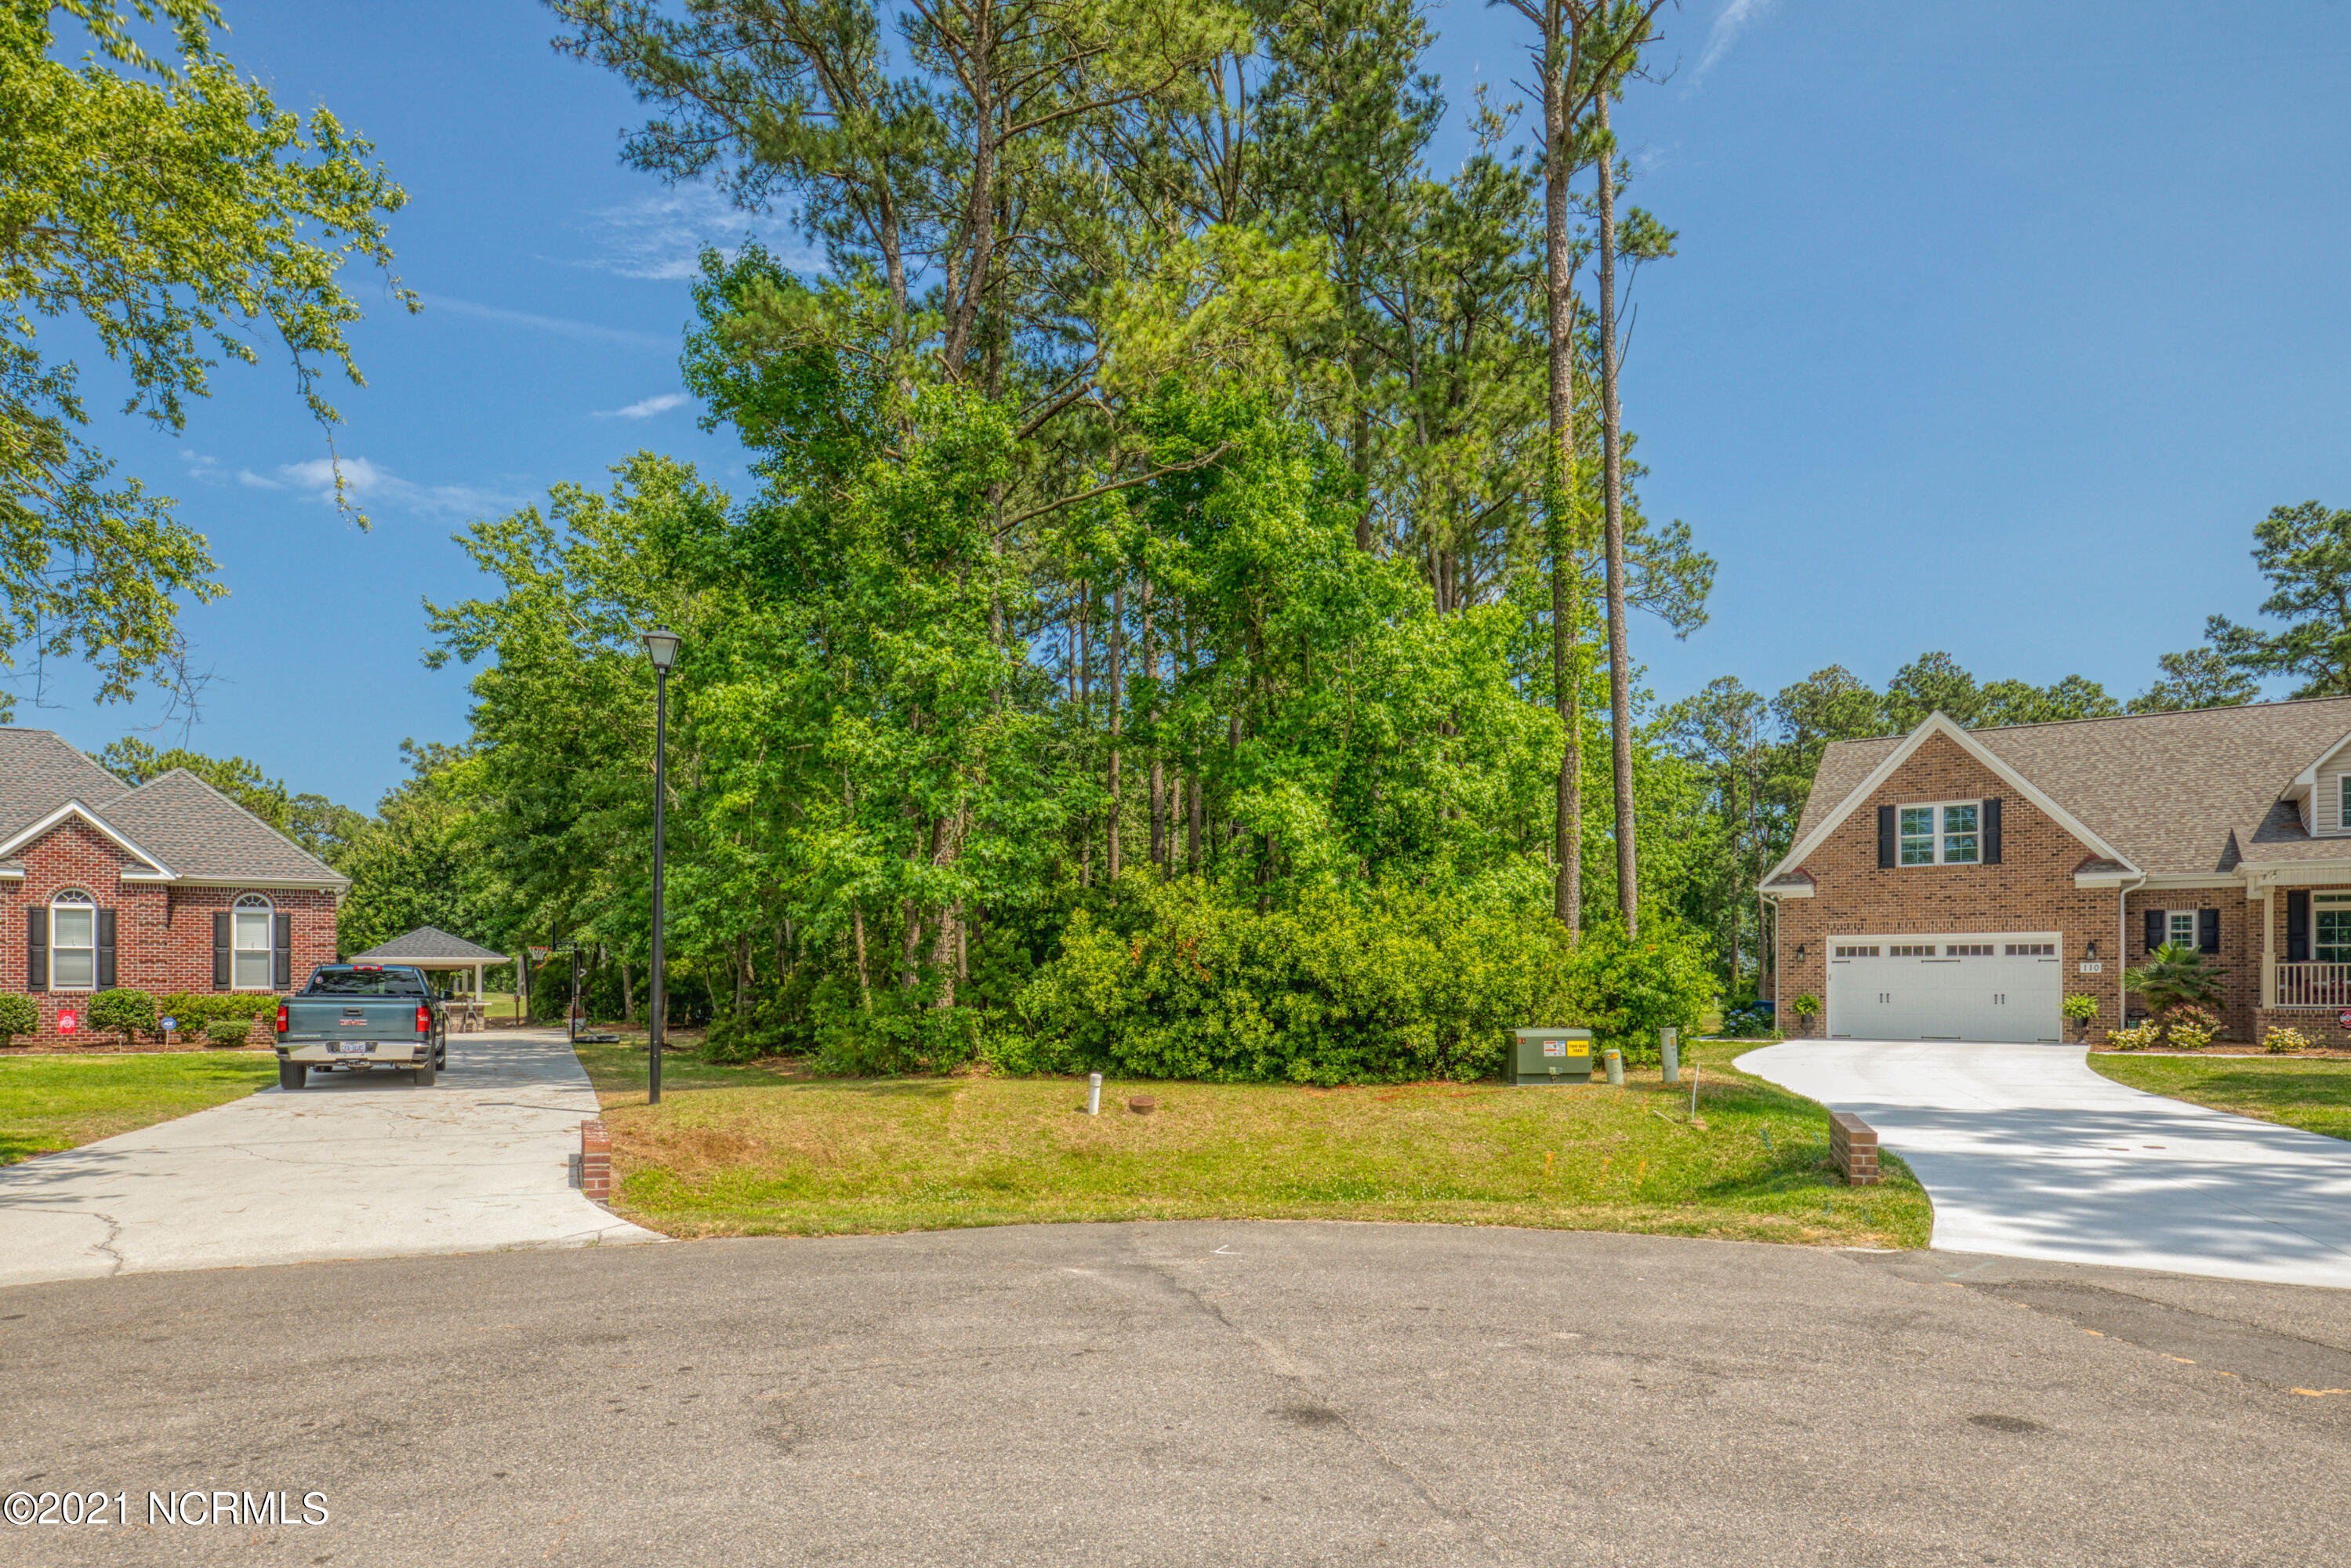 Gorgeous lot in N Shore close to amenities and backs up to the golf course.  Don't miss the opportunity to build your dream home.